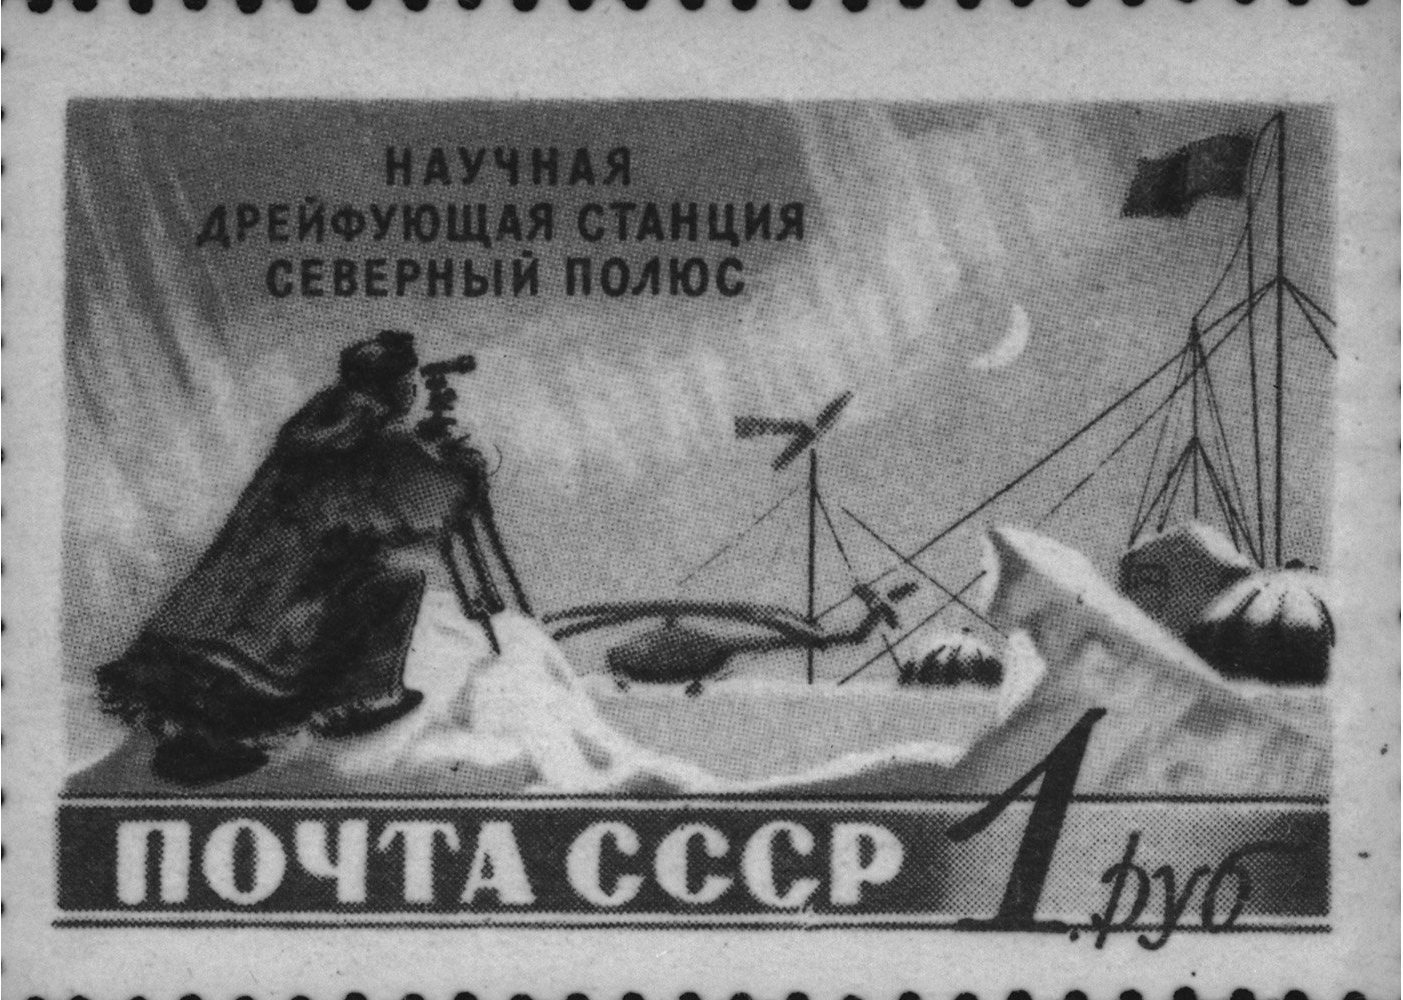 A Soviet postage stamp devoted to the exploration of the Arctic and the Antarctic. Reproduction